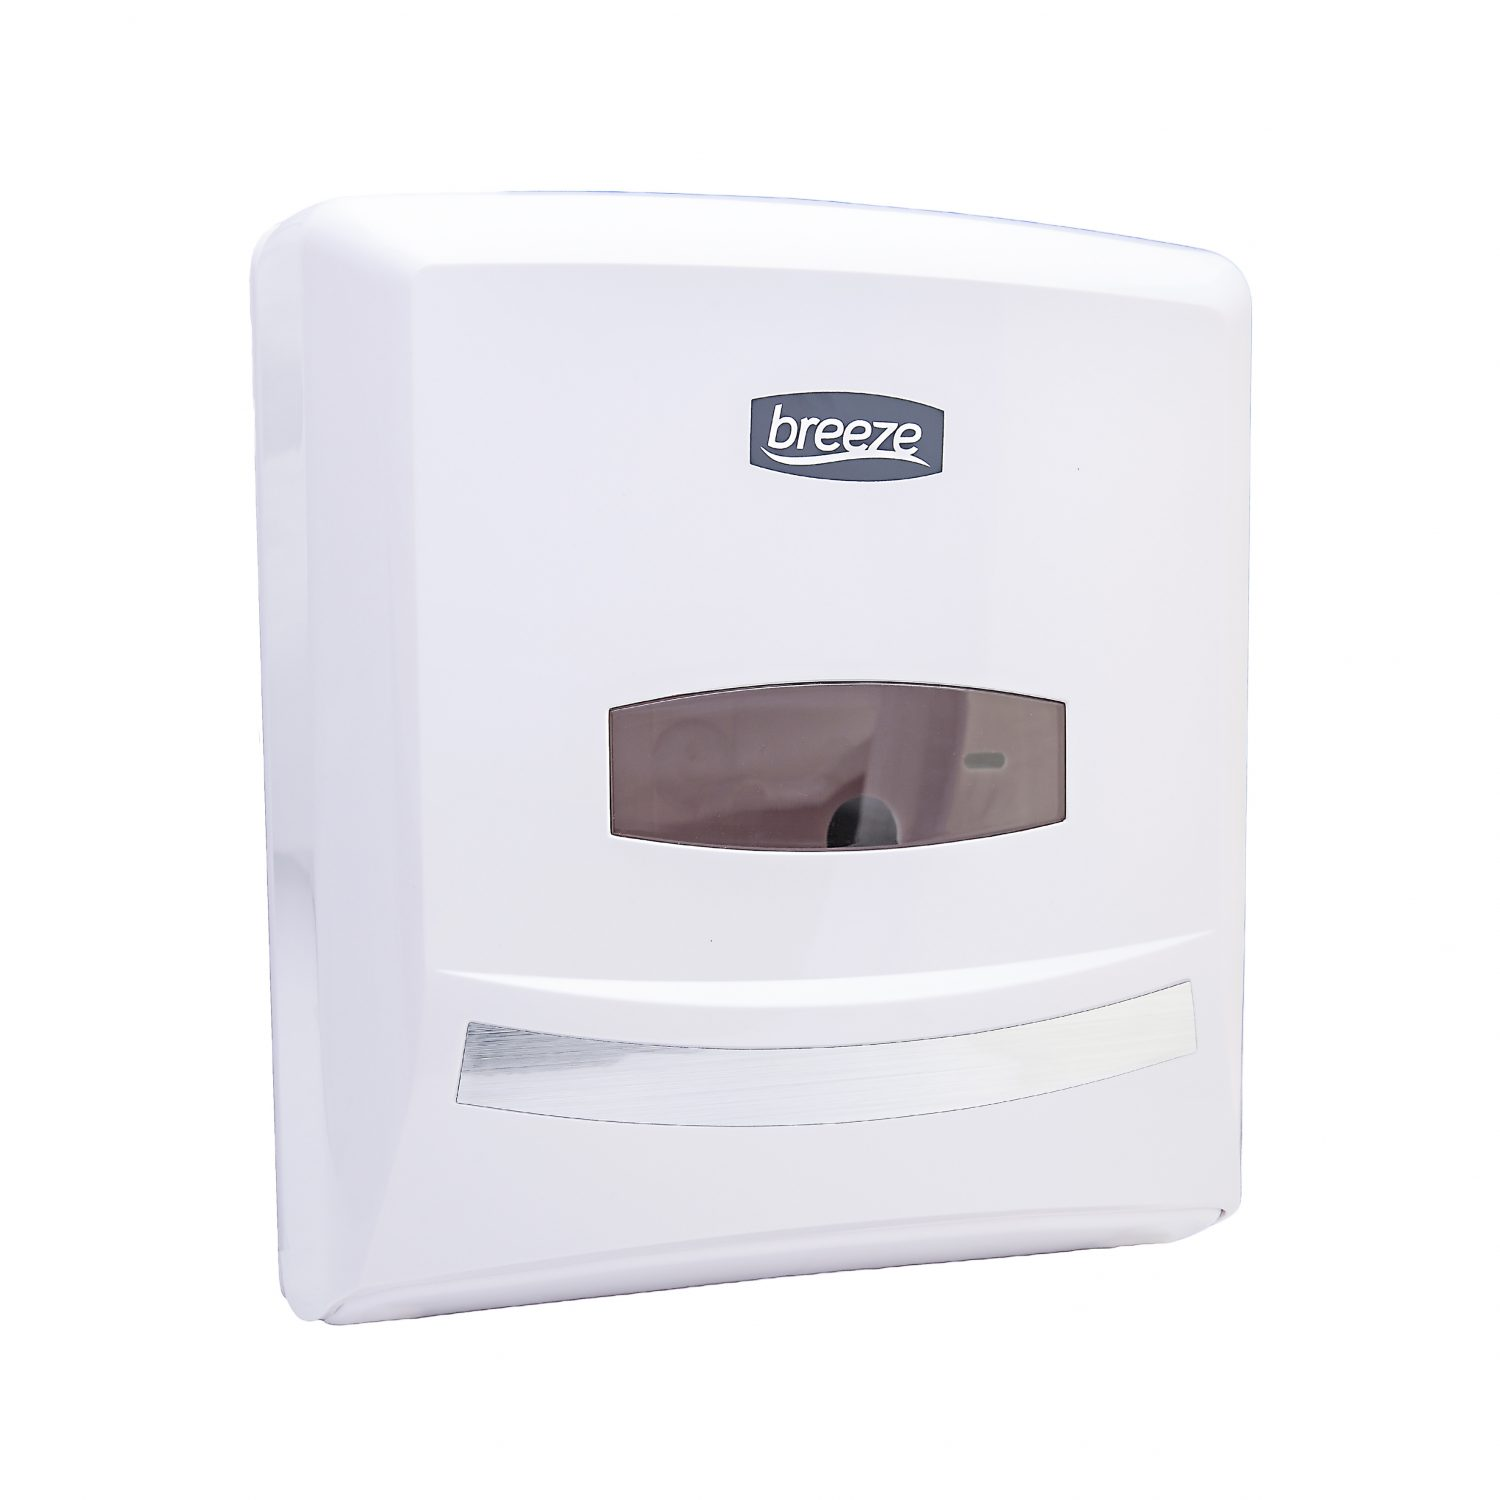 White Breeze Folded Paper towel Dispenser